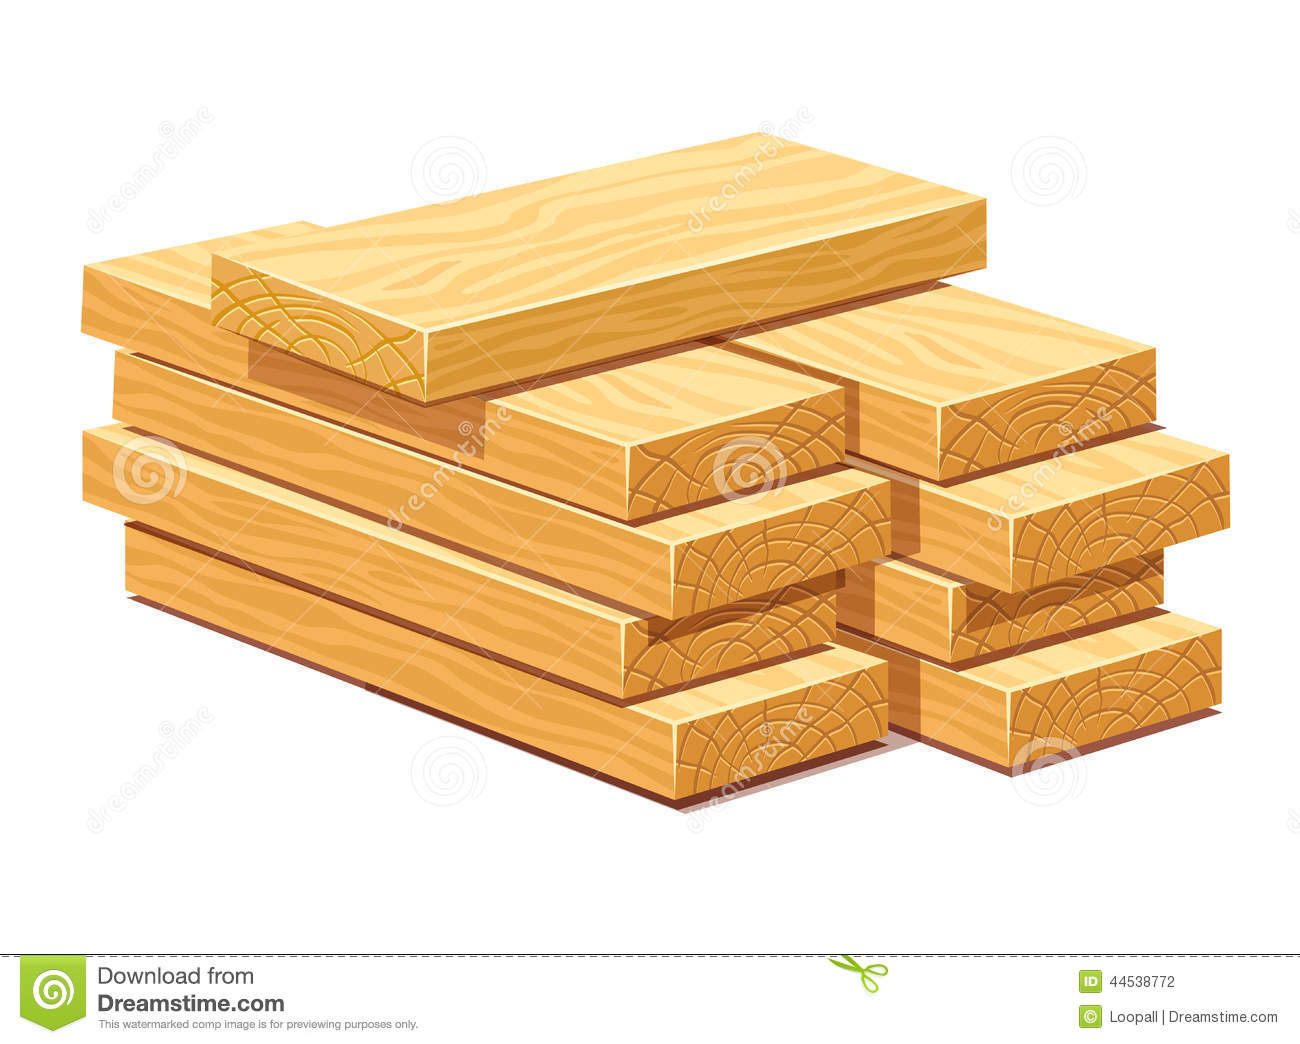 Pile of wooden timber planks stock illustration